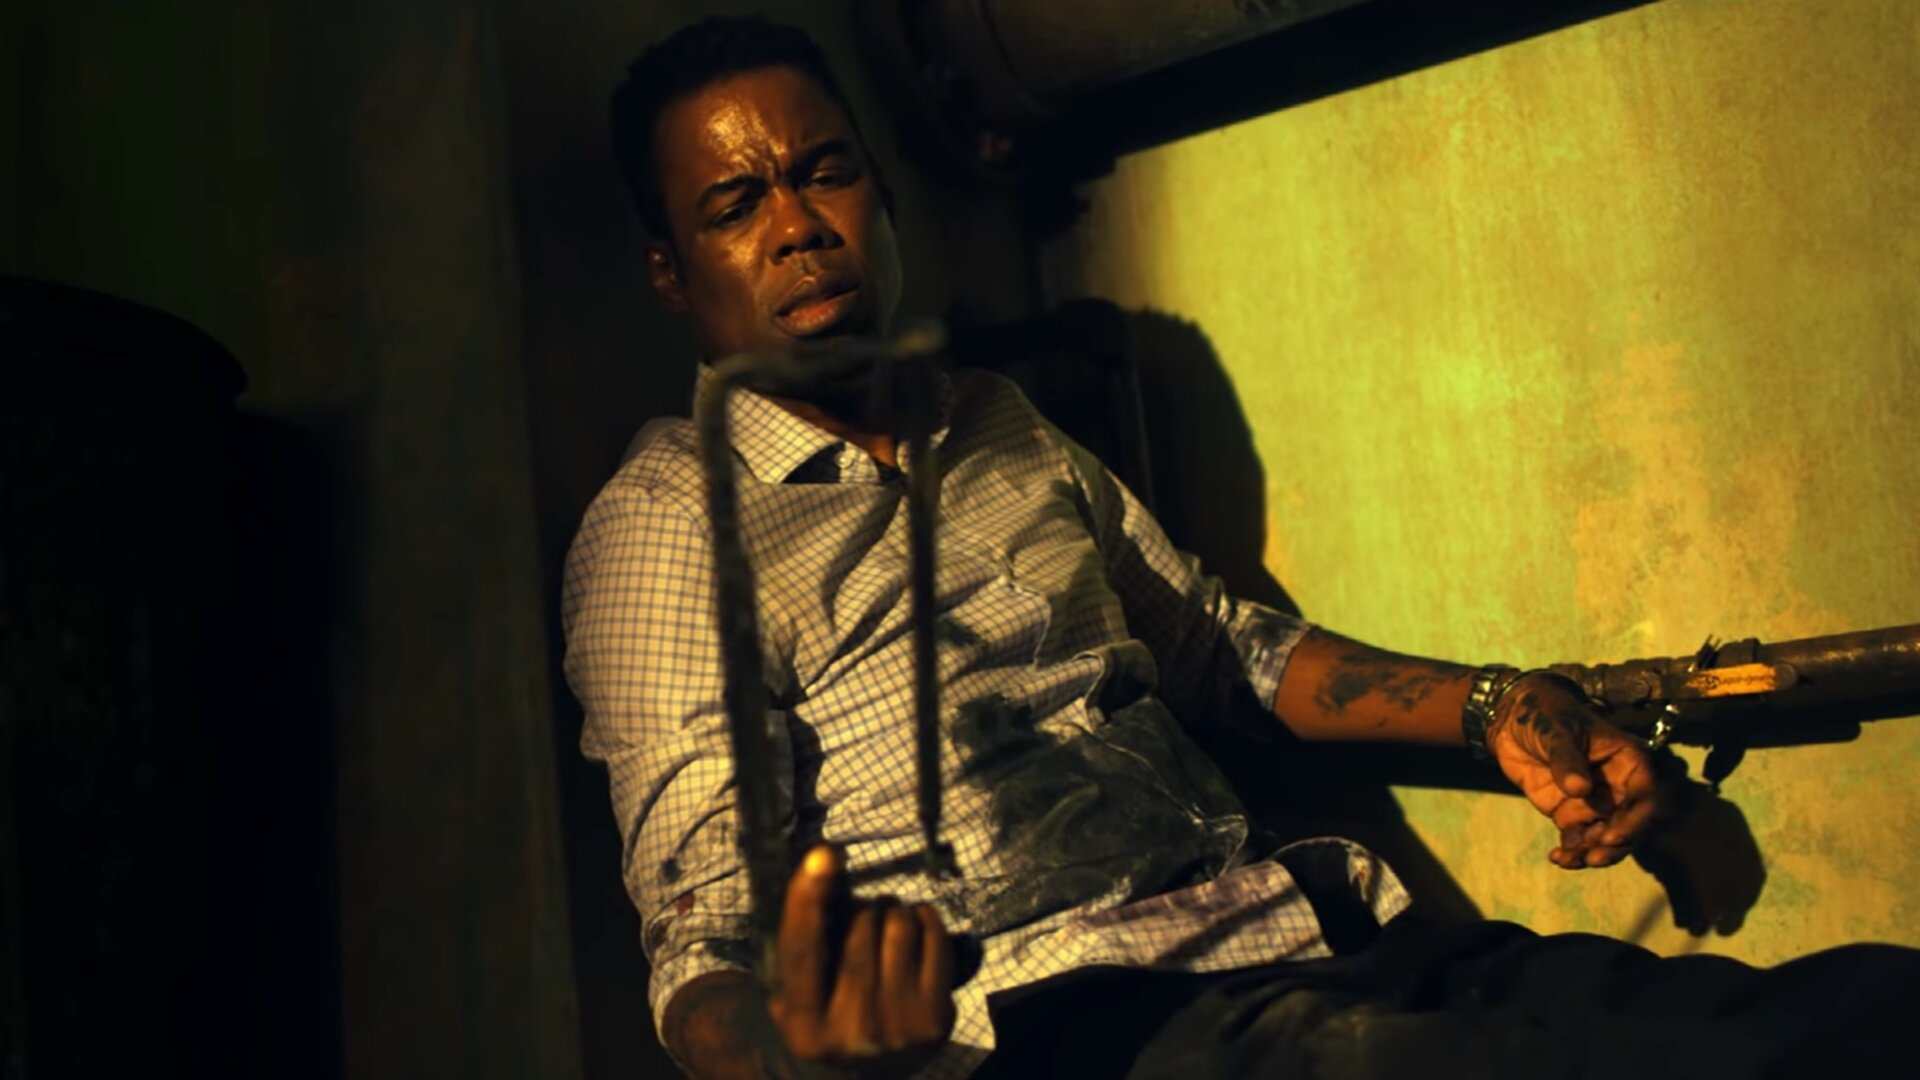 Chris Rock as Detective Banks in Spiral: From the Book of Saw. Det. Banks is slumped in a darkened room, handcuffed by one arm to a pipe, mirroring the trap from the first film. In his other hand he holds a saw, which he stares down at.